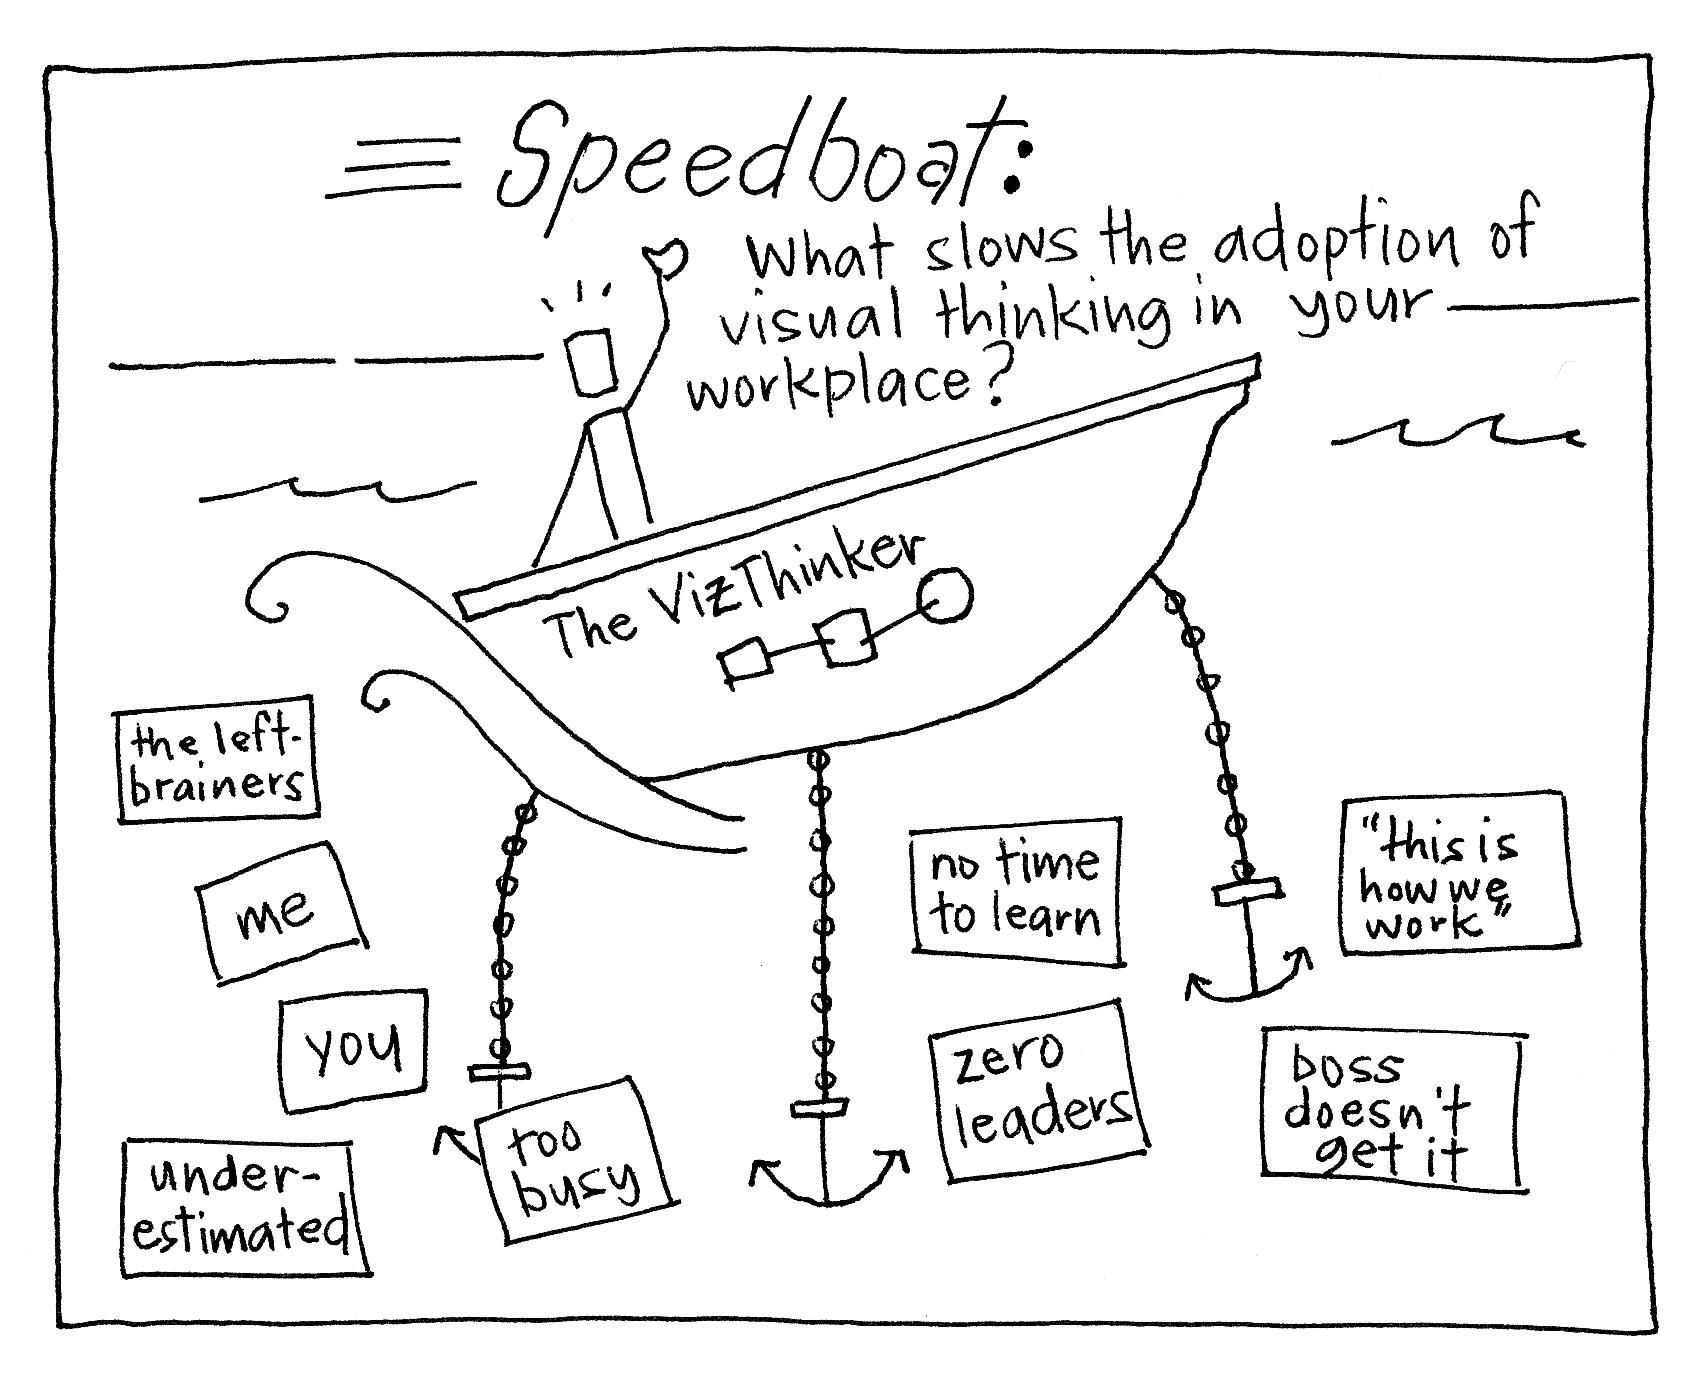 Gamestorming Blog Archive Speed Boat